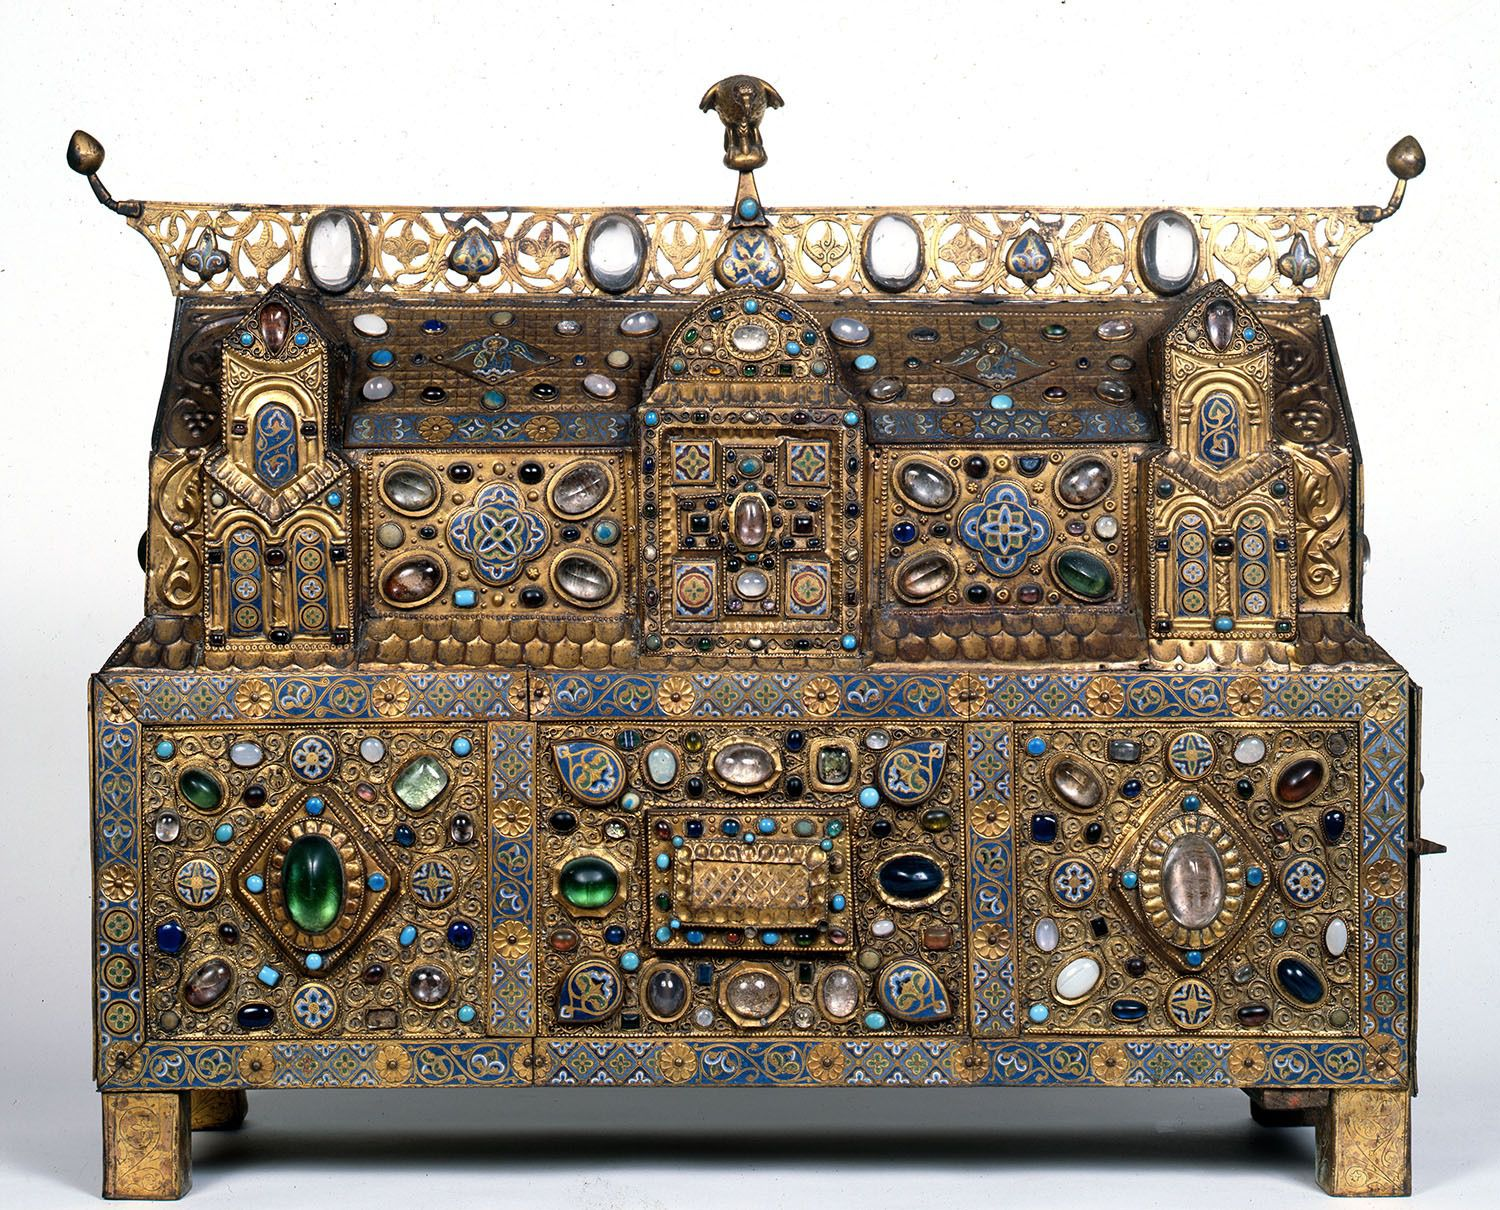 Chasse of Ambazac: From the Treasury of Grandmont Limoges, ca 1180-90